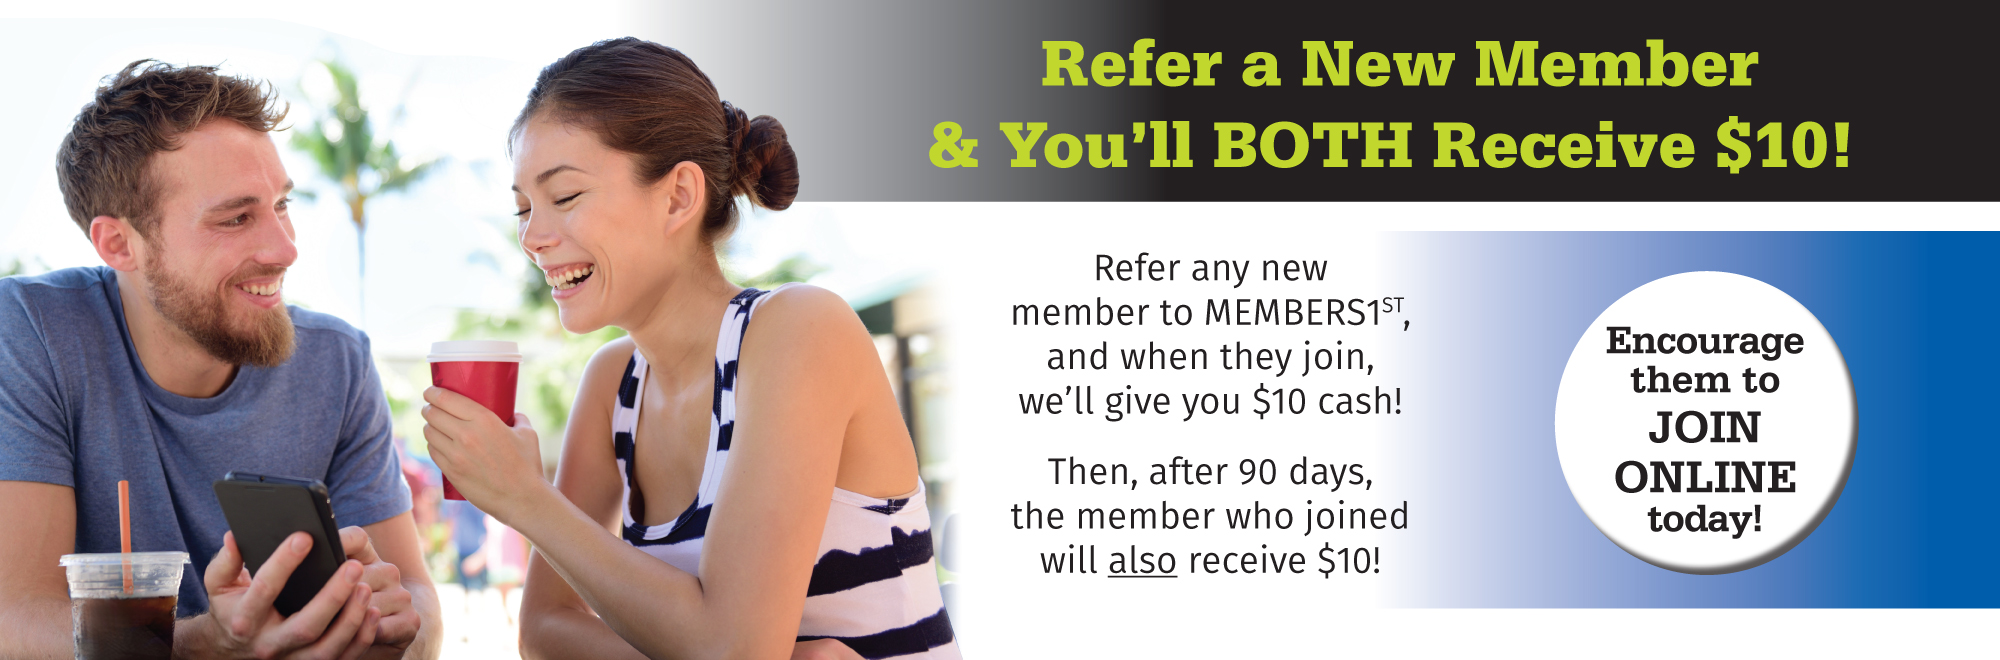 Refer a new member and receive $10